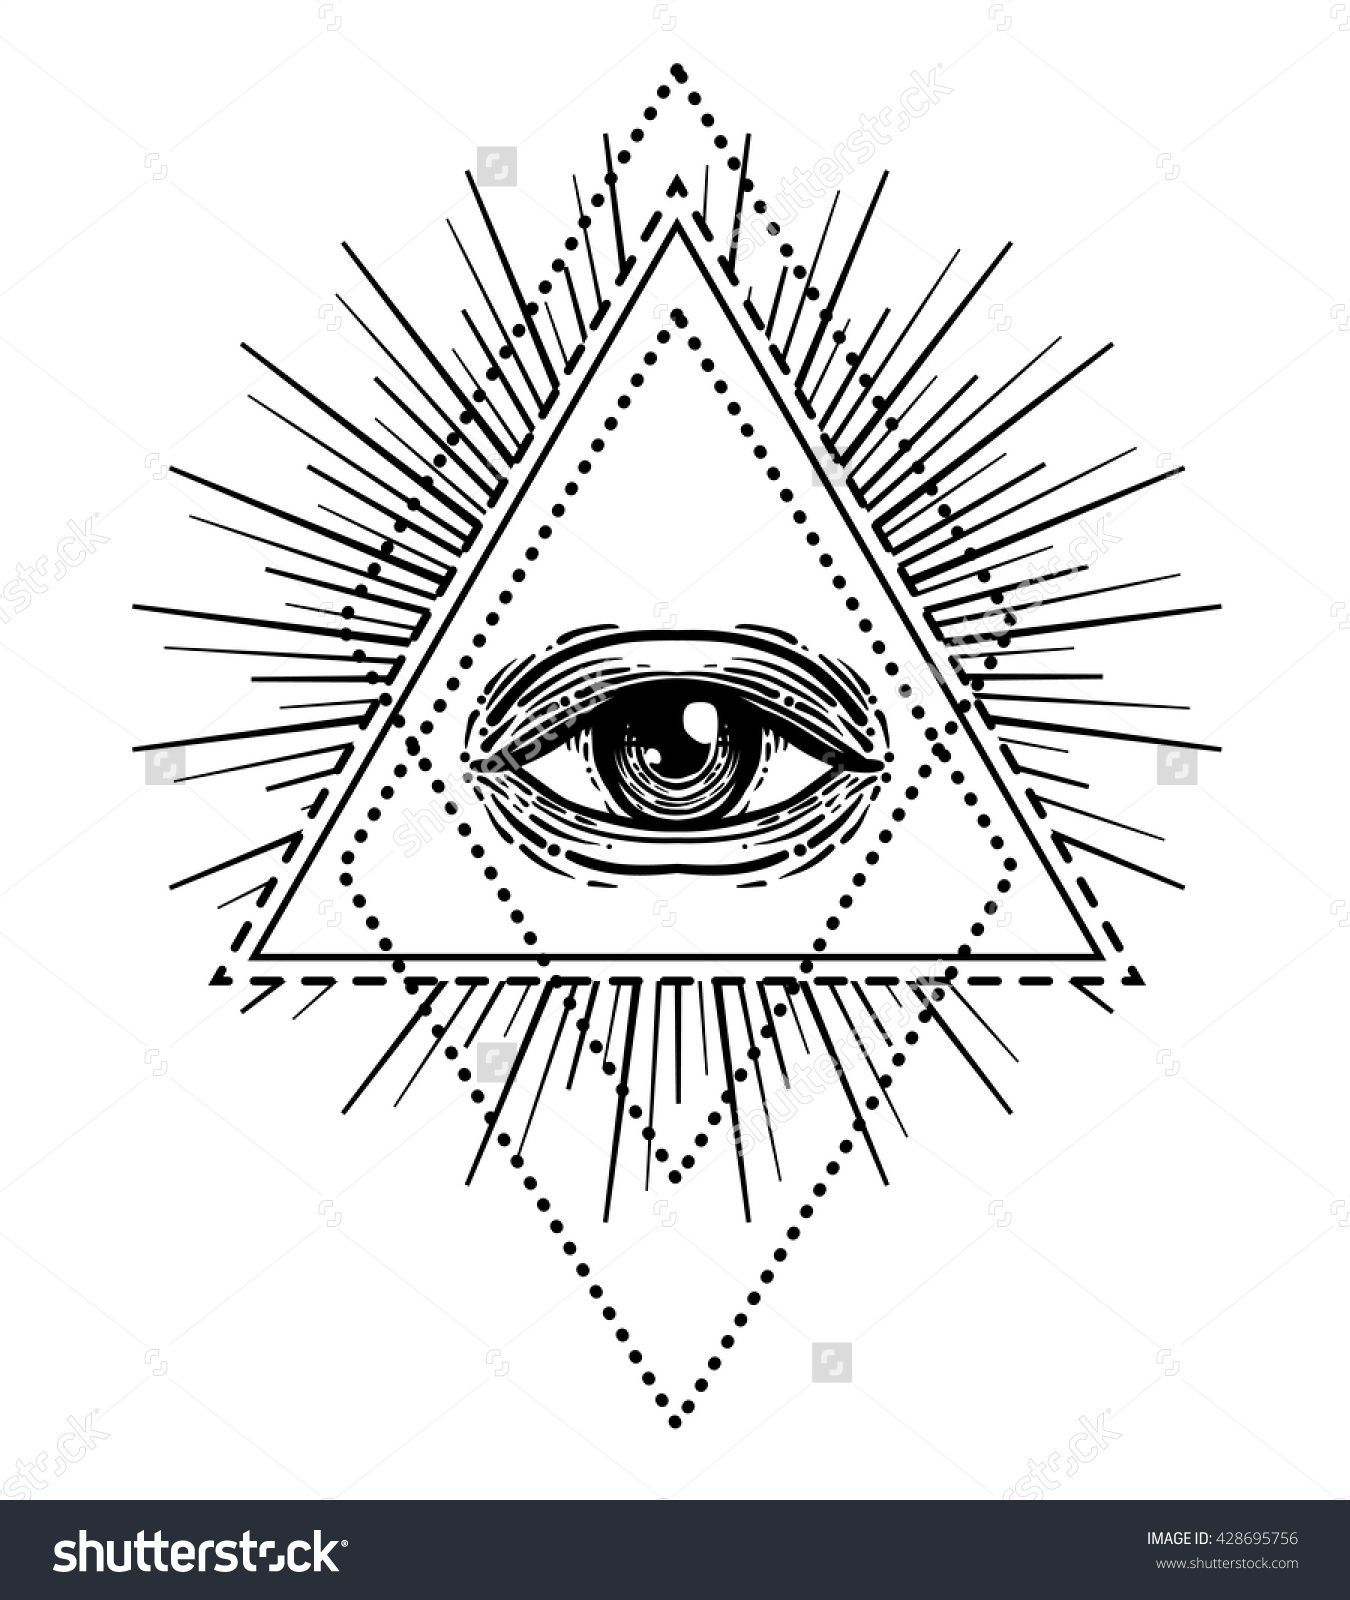 Blackwork tattoo flash. Eye of Providence. Masonic symbol ...